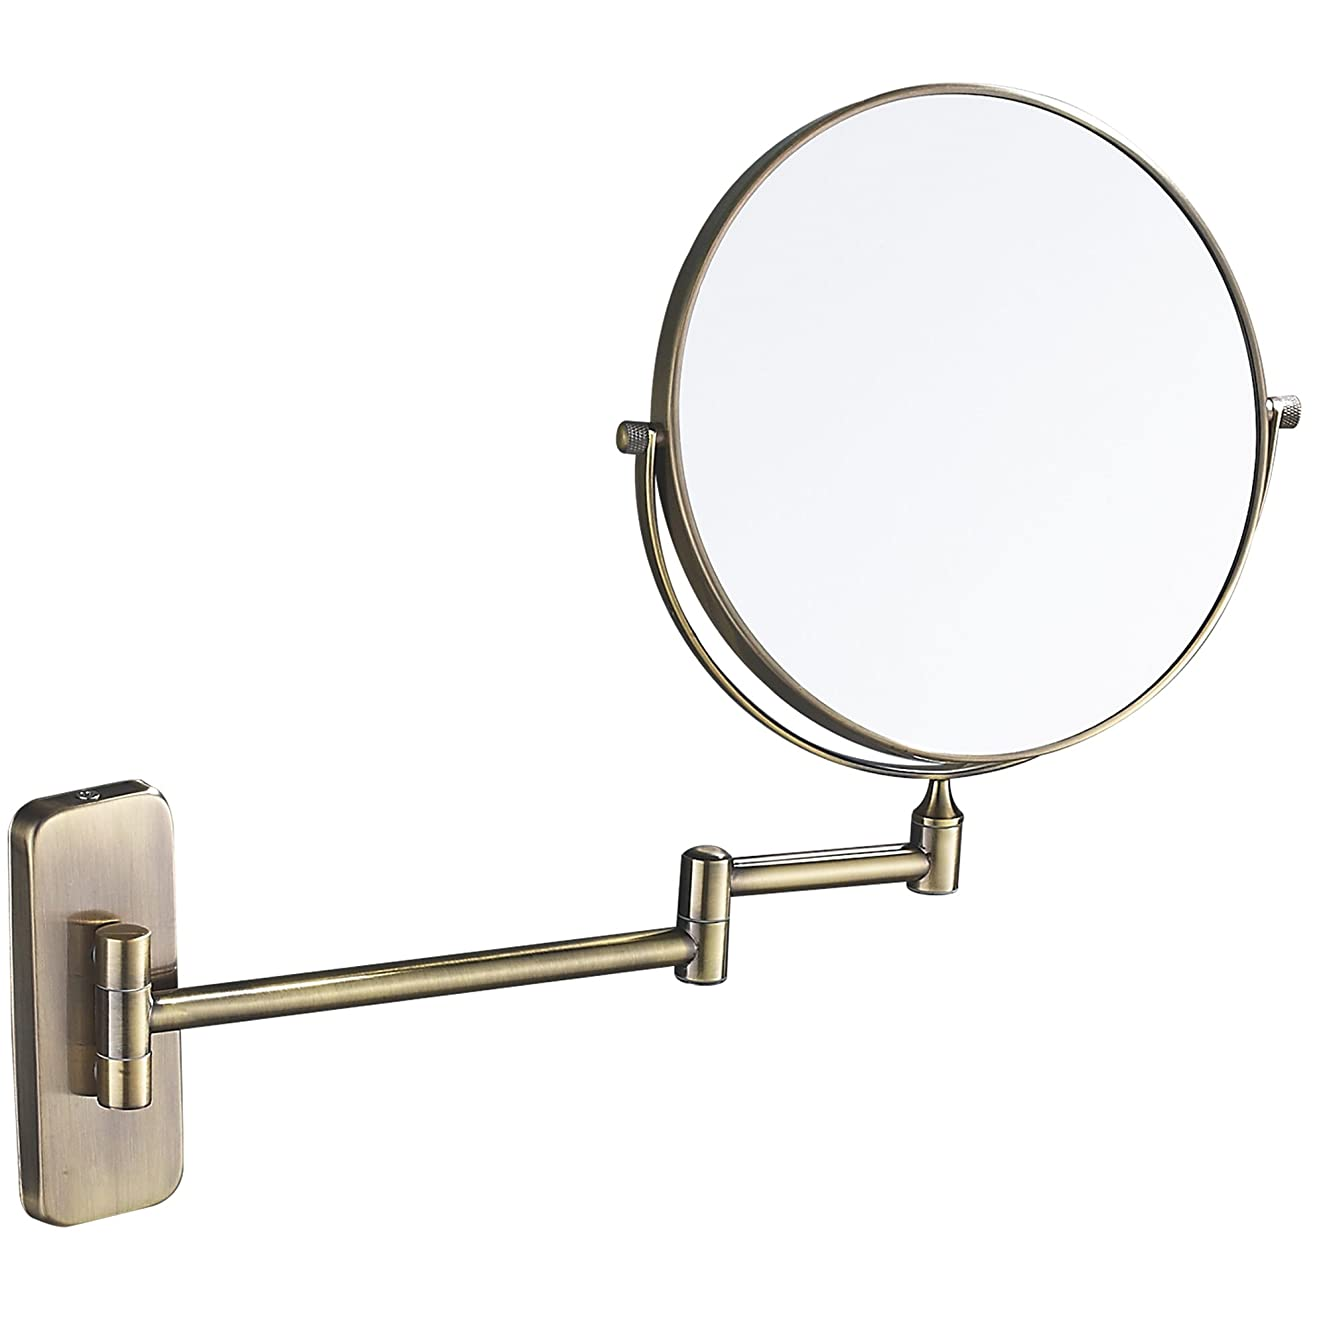 GURUN 8-Inch Double-Sided Wall Mount Makeup Mirrors with 10x Magnification M1406 (8''10Magnification, Bronze)